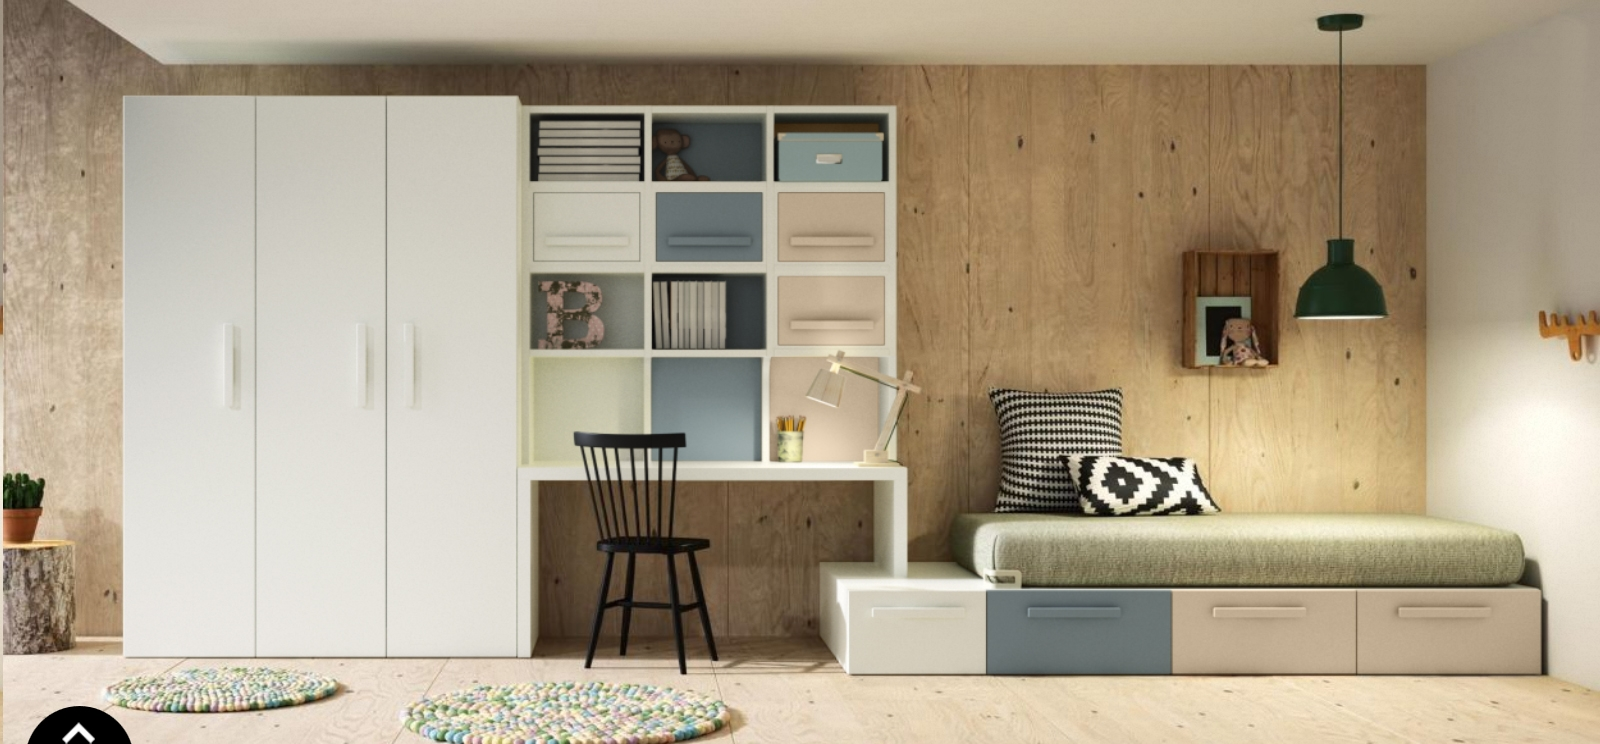 camere complete teenagers camere per ragazzi. Black Bedroom Furniture Sets. Home Design Ideas